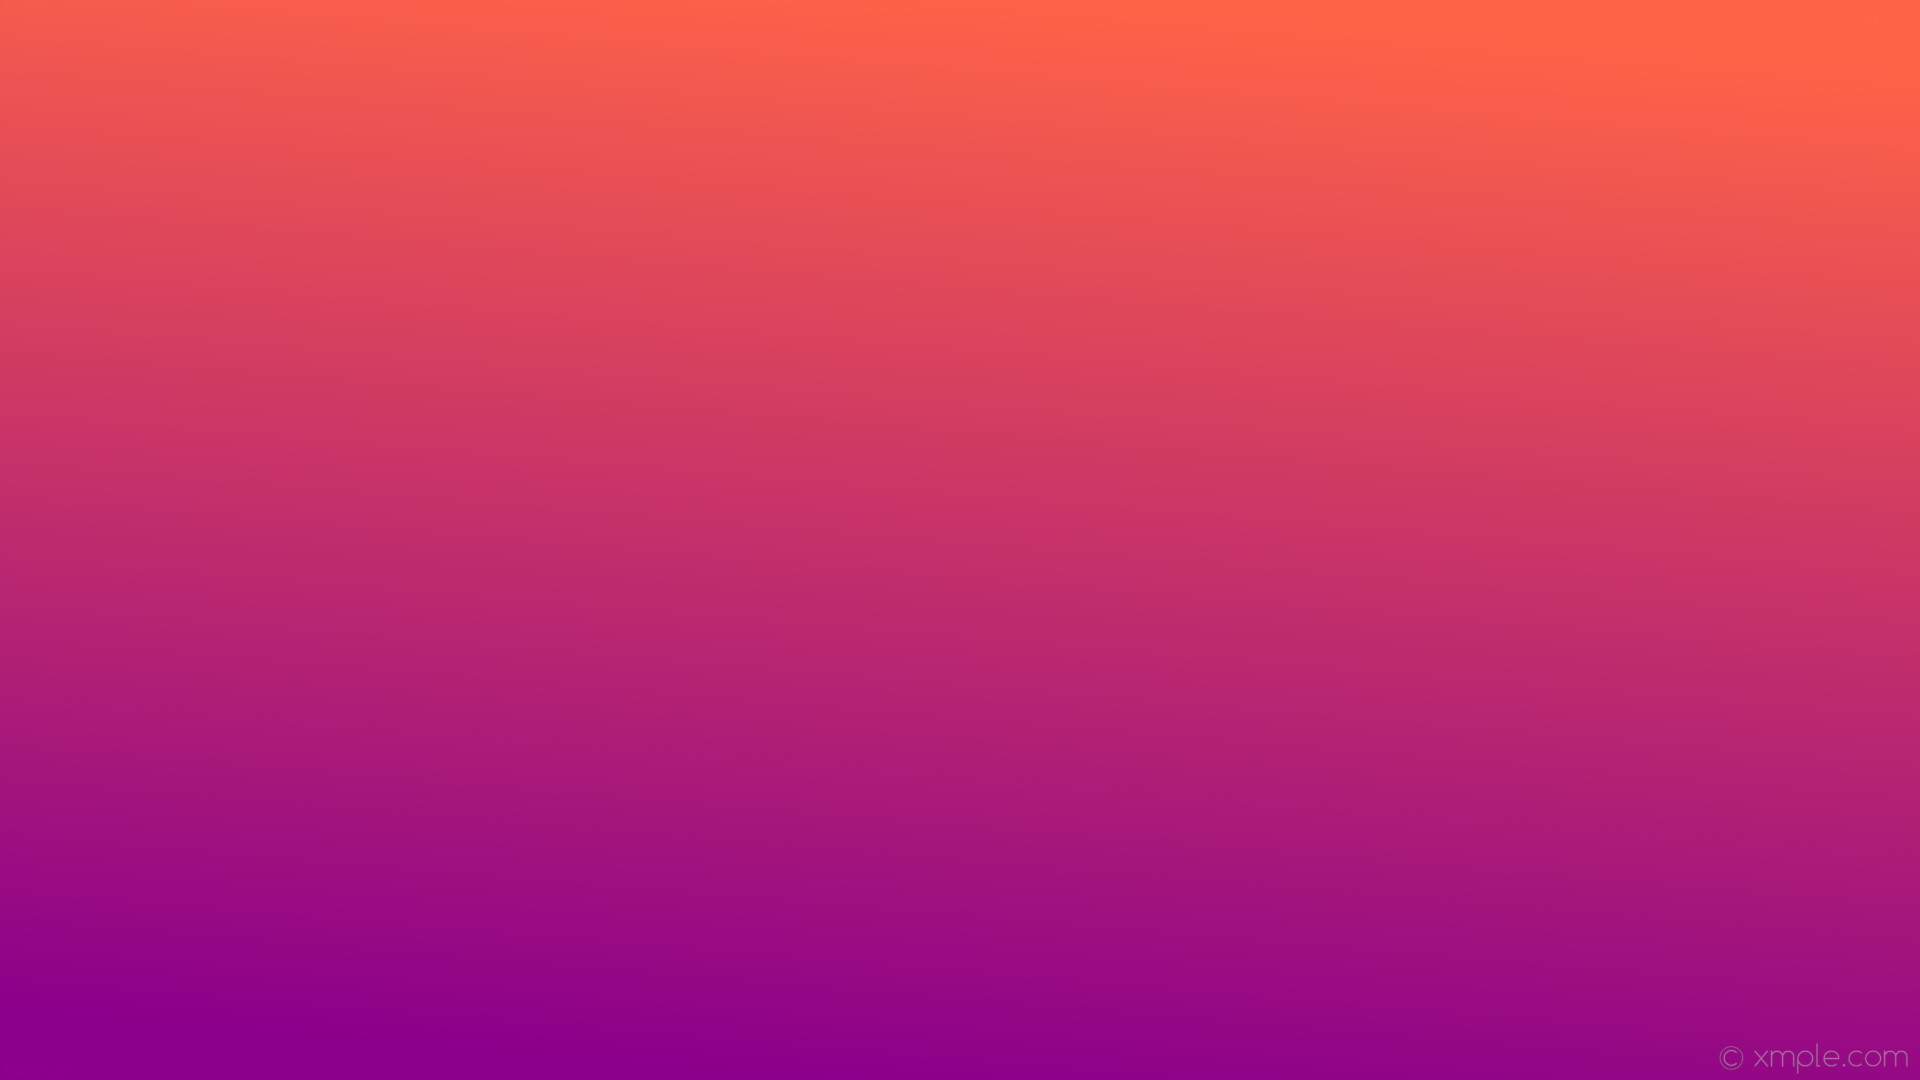 Moving Wallpaper Iphone X Orange And Purple Backgrounds 53 Images